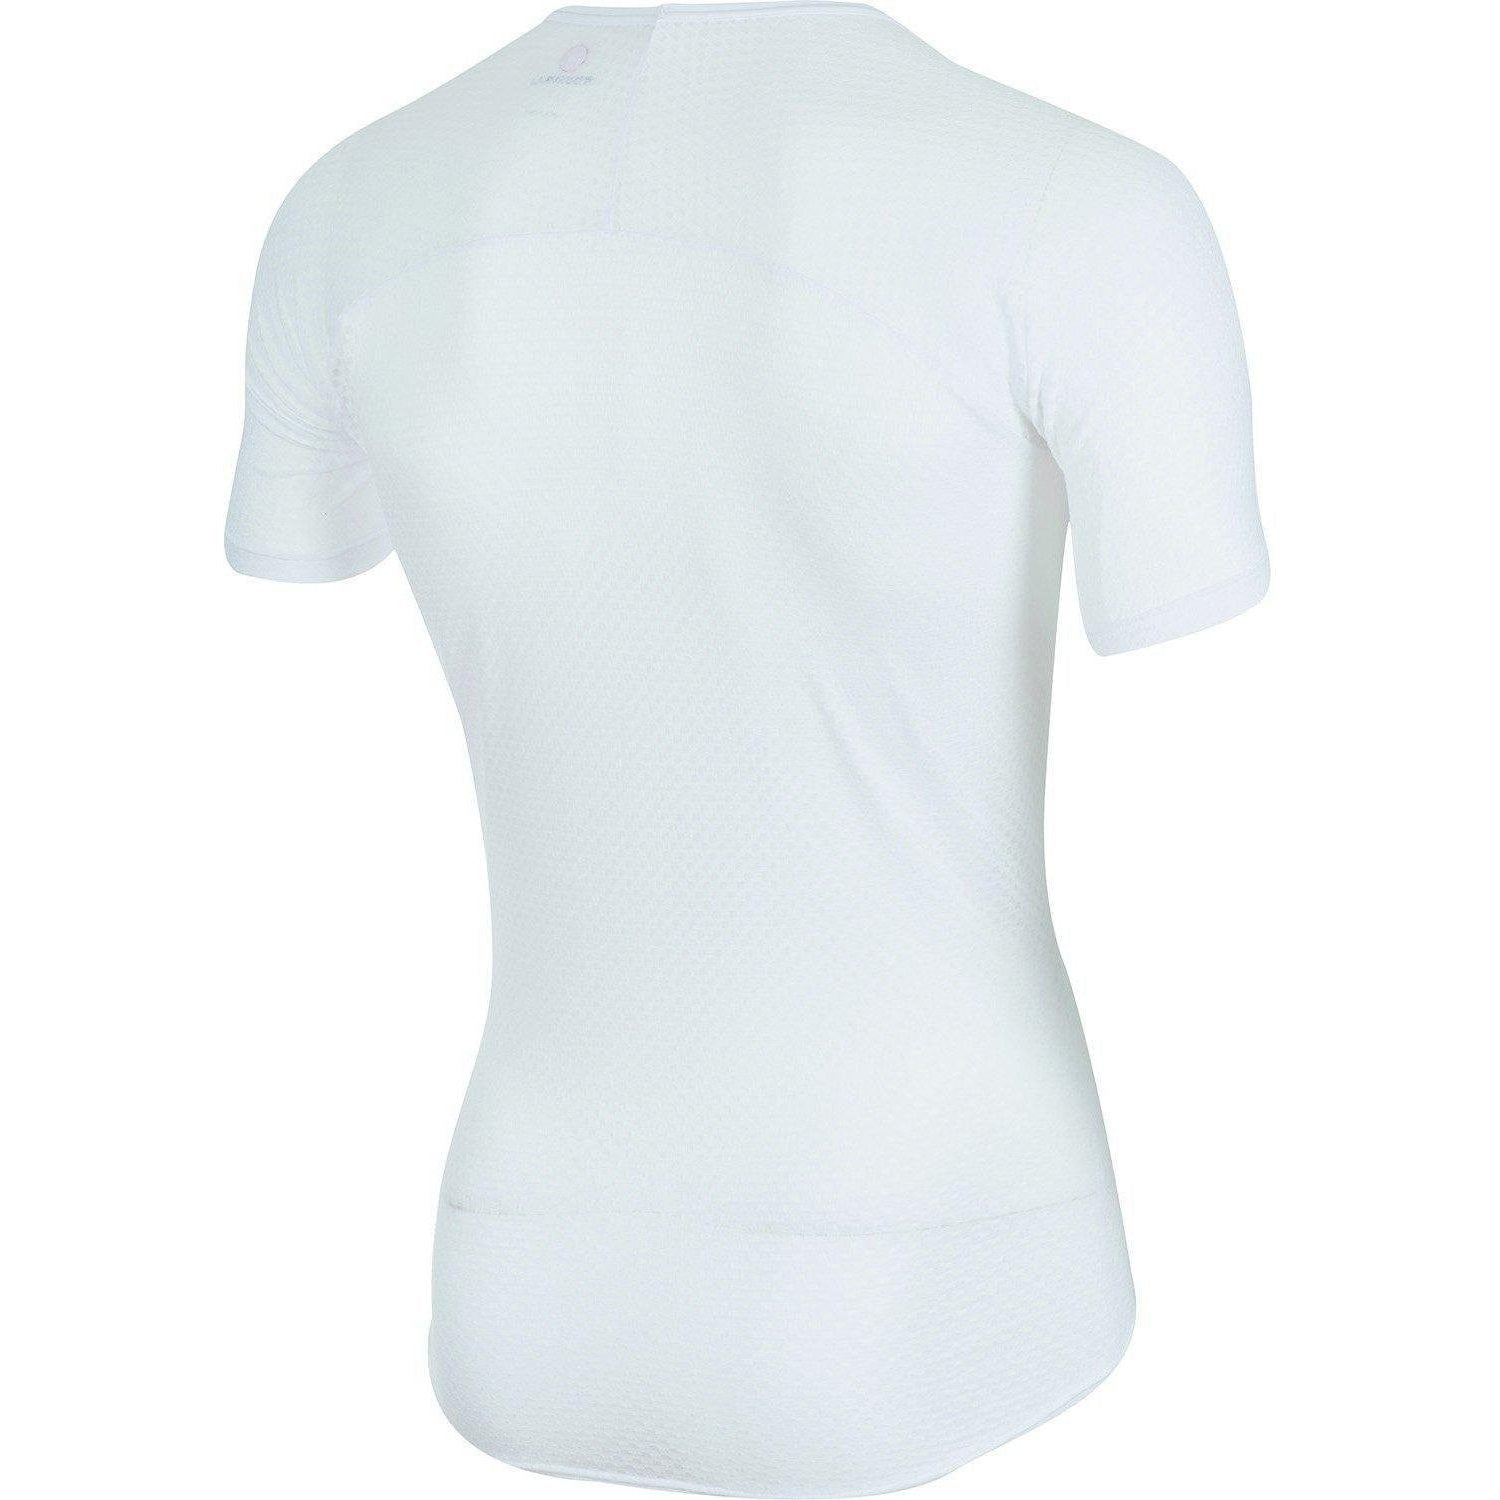 Castelli-Castelli Pro Issue Short Sleeve Base Layer--saddleback-elite-performance-cycling